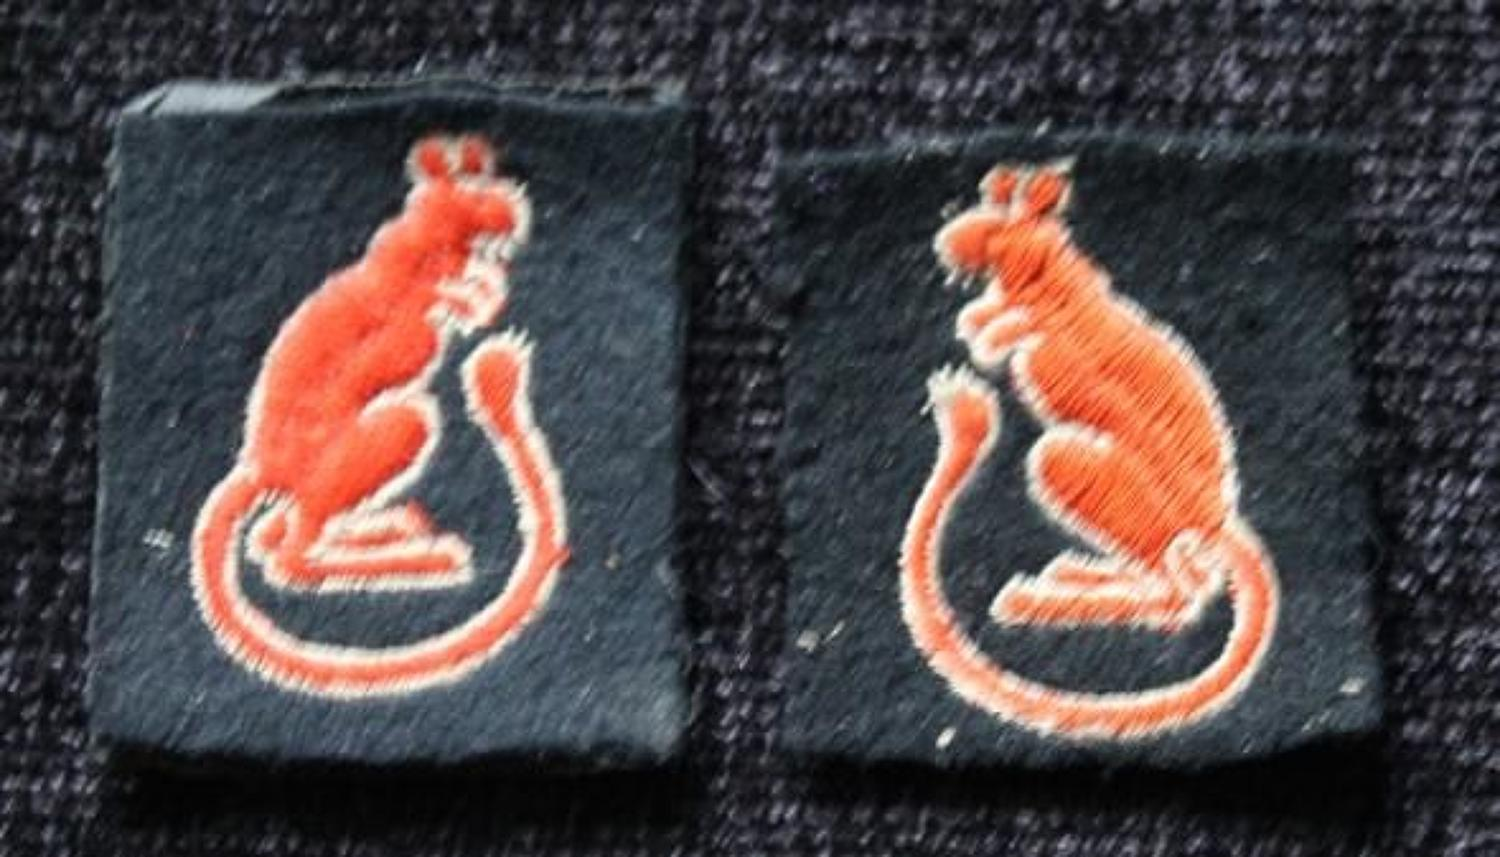 Desert Rats Formation Patches